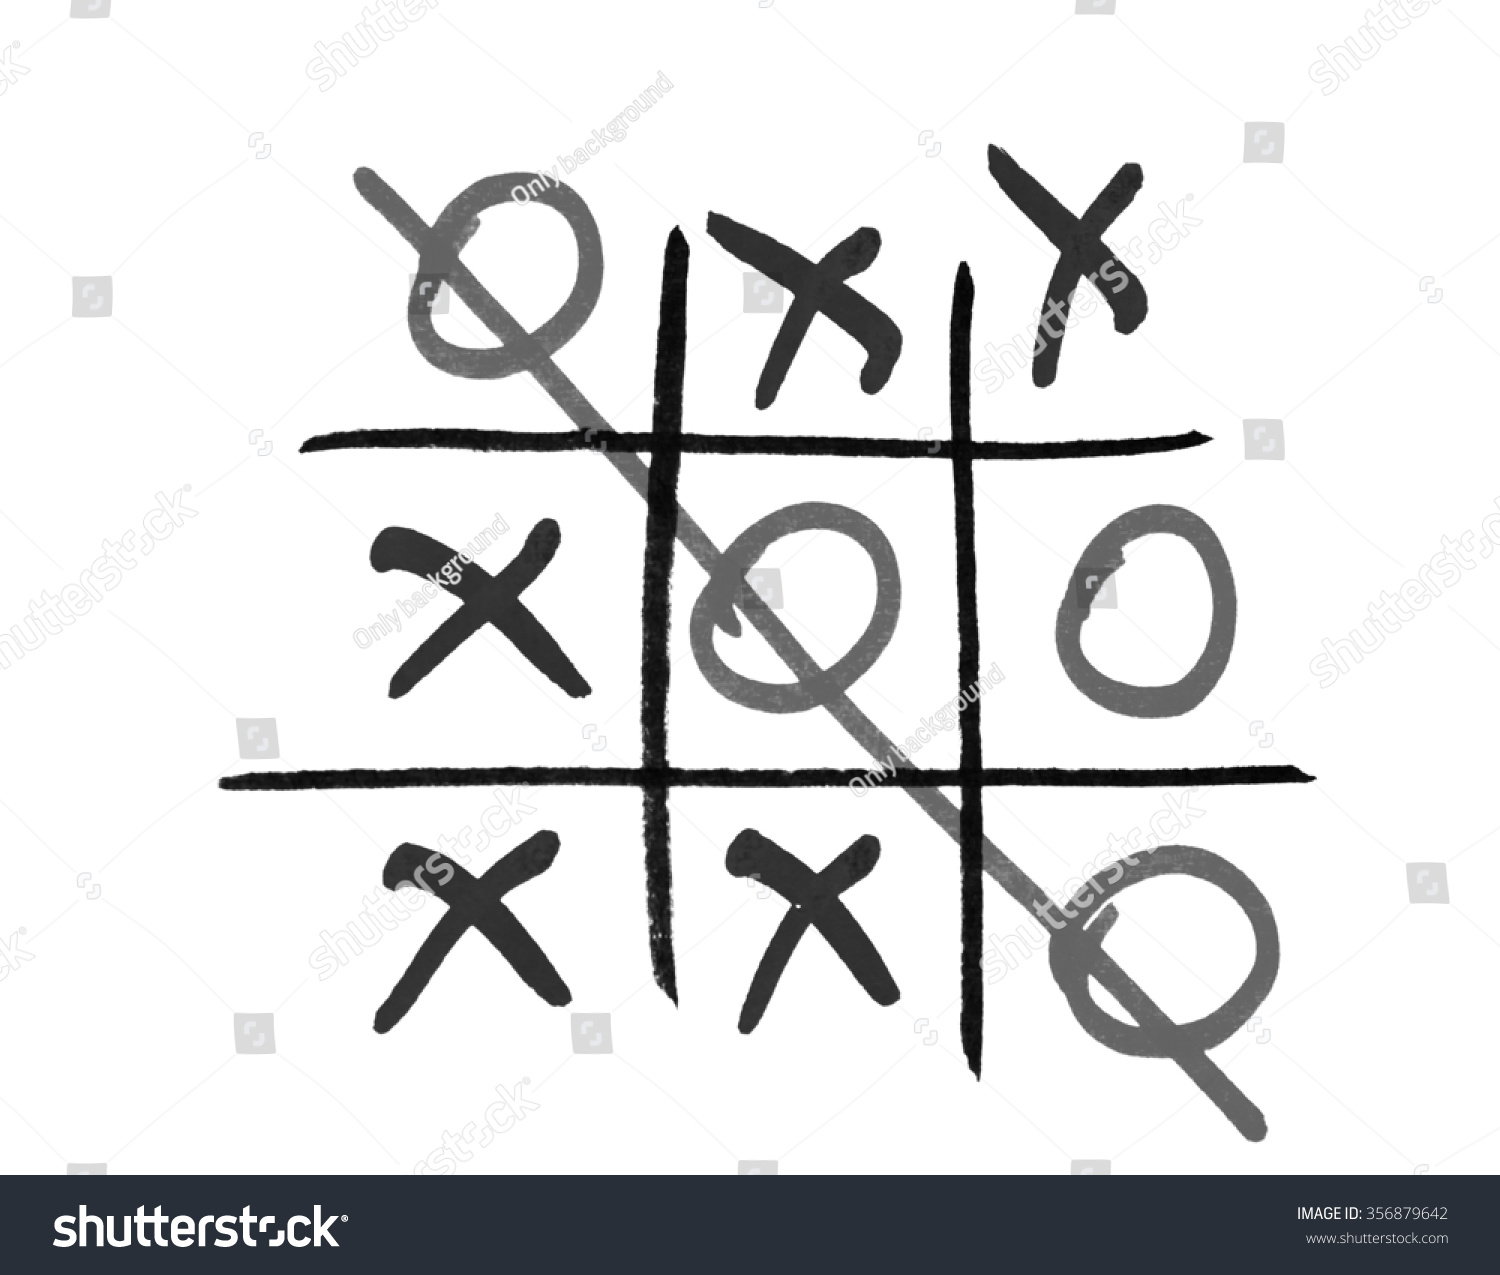 Xo Game Stock Photo 356879642 - Shutterstock